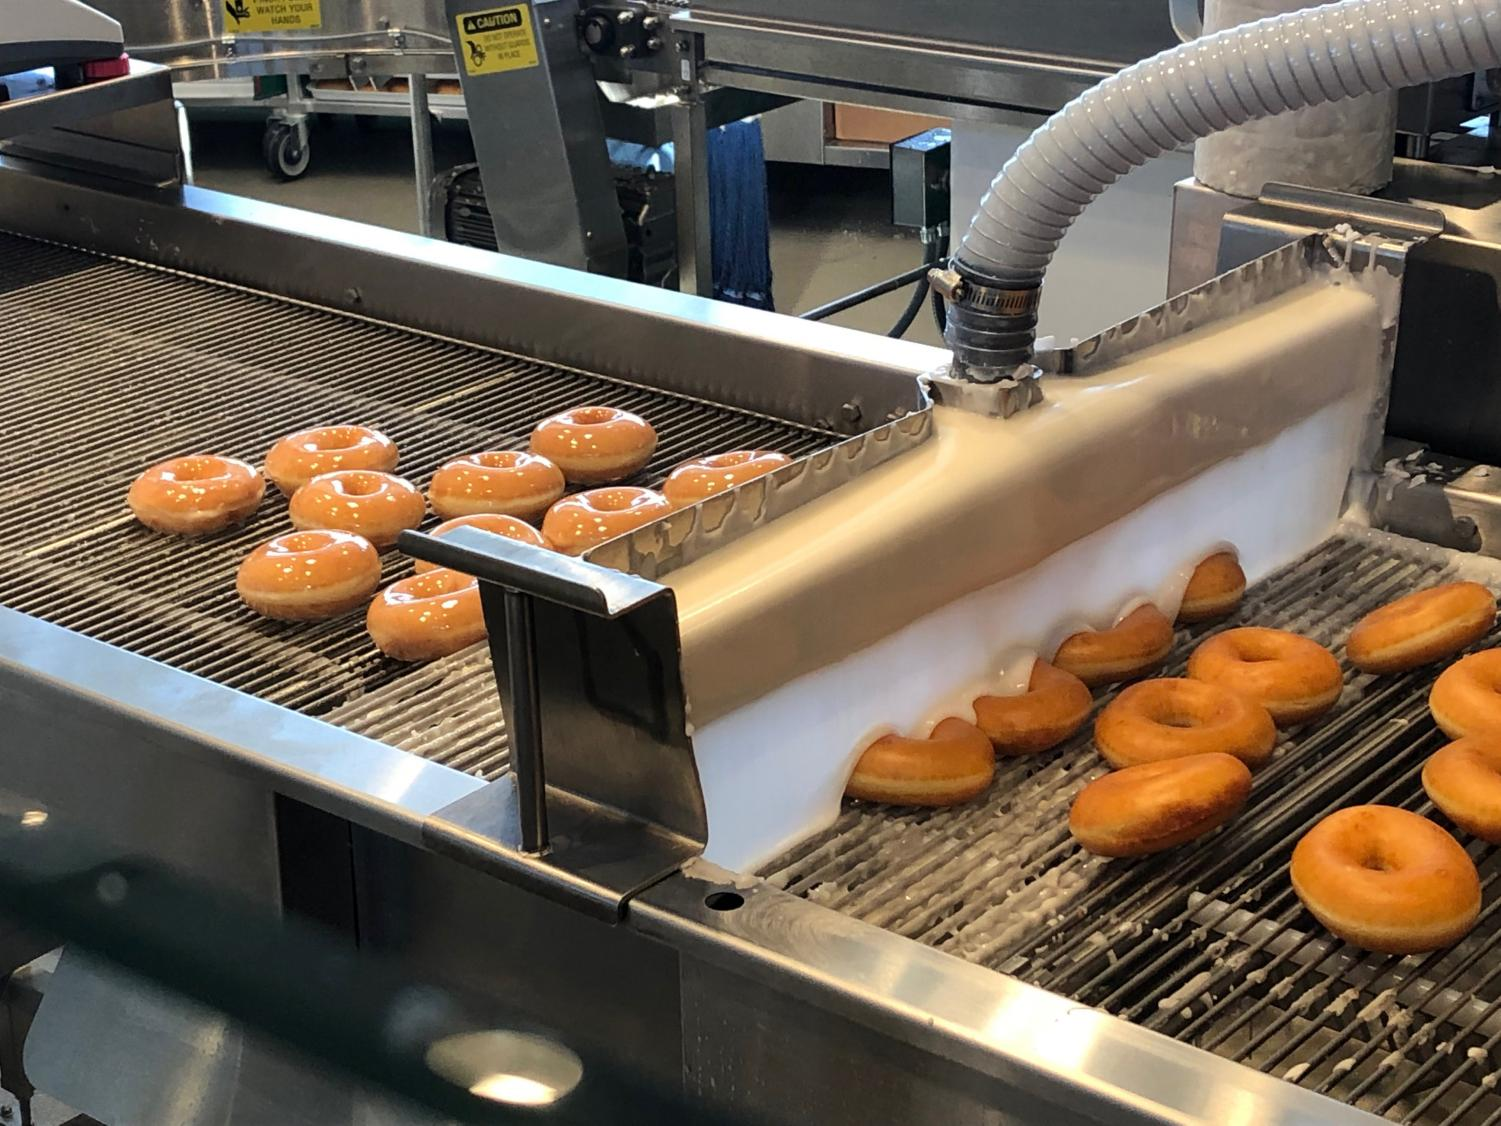 Pictured+is+the+doughnut-making+process.+This+can+be+viewed+from+inside+the+restaurant+during+certain+hours+of+the+day.